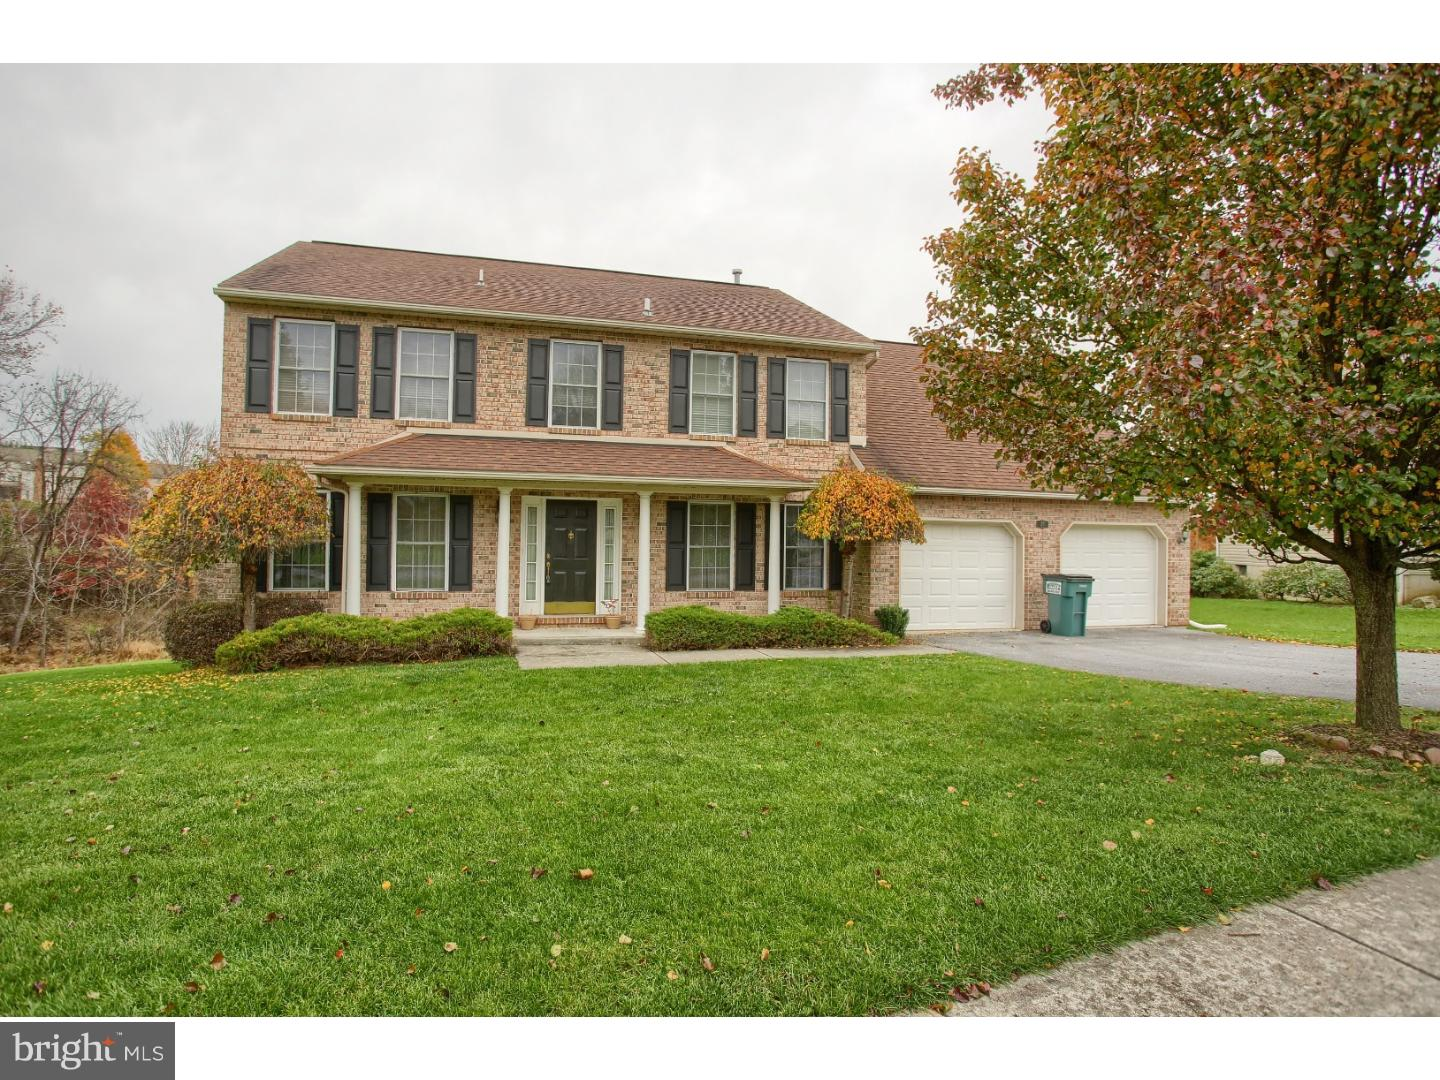 27 NANCY CIRCLE, READING, PA 19606